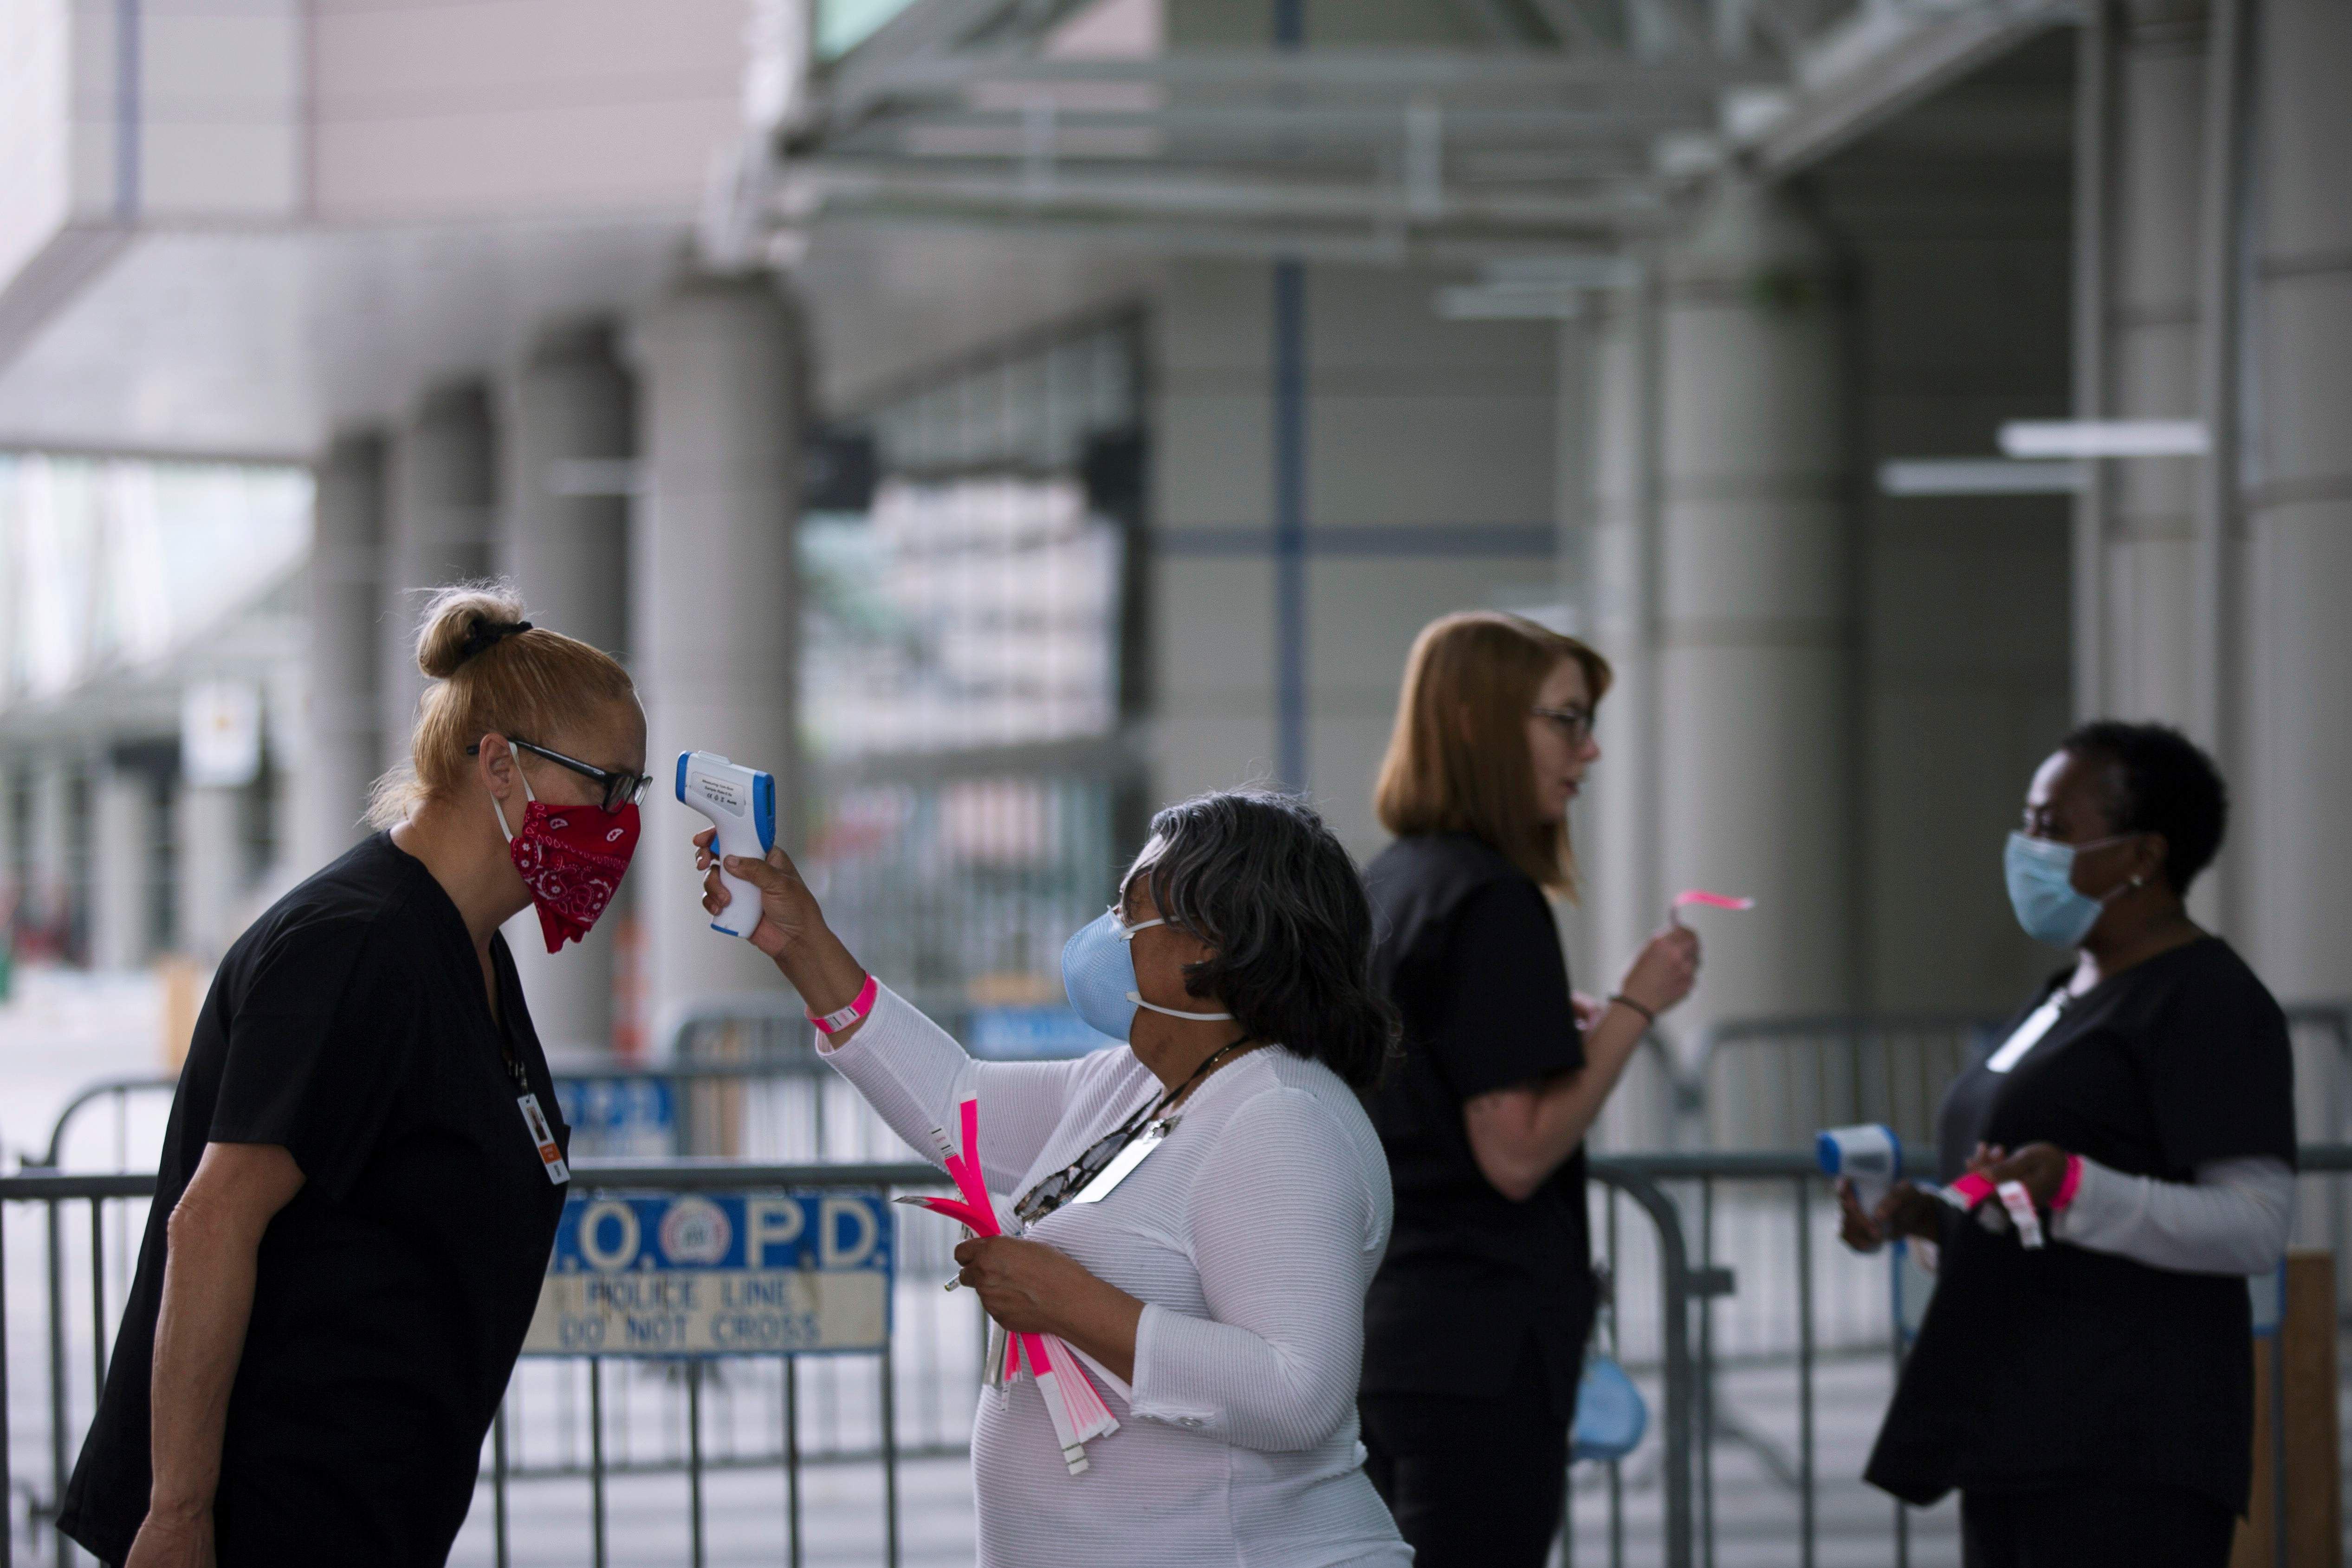 Medical personnel take temperature as they prepare the Ernest N. Morial Convention Center for coronavirus disease (COVID-19) patients in New Orleans, Louisiana, US, on April 6, 2020. Photo: Reuters